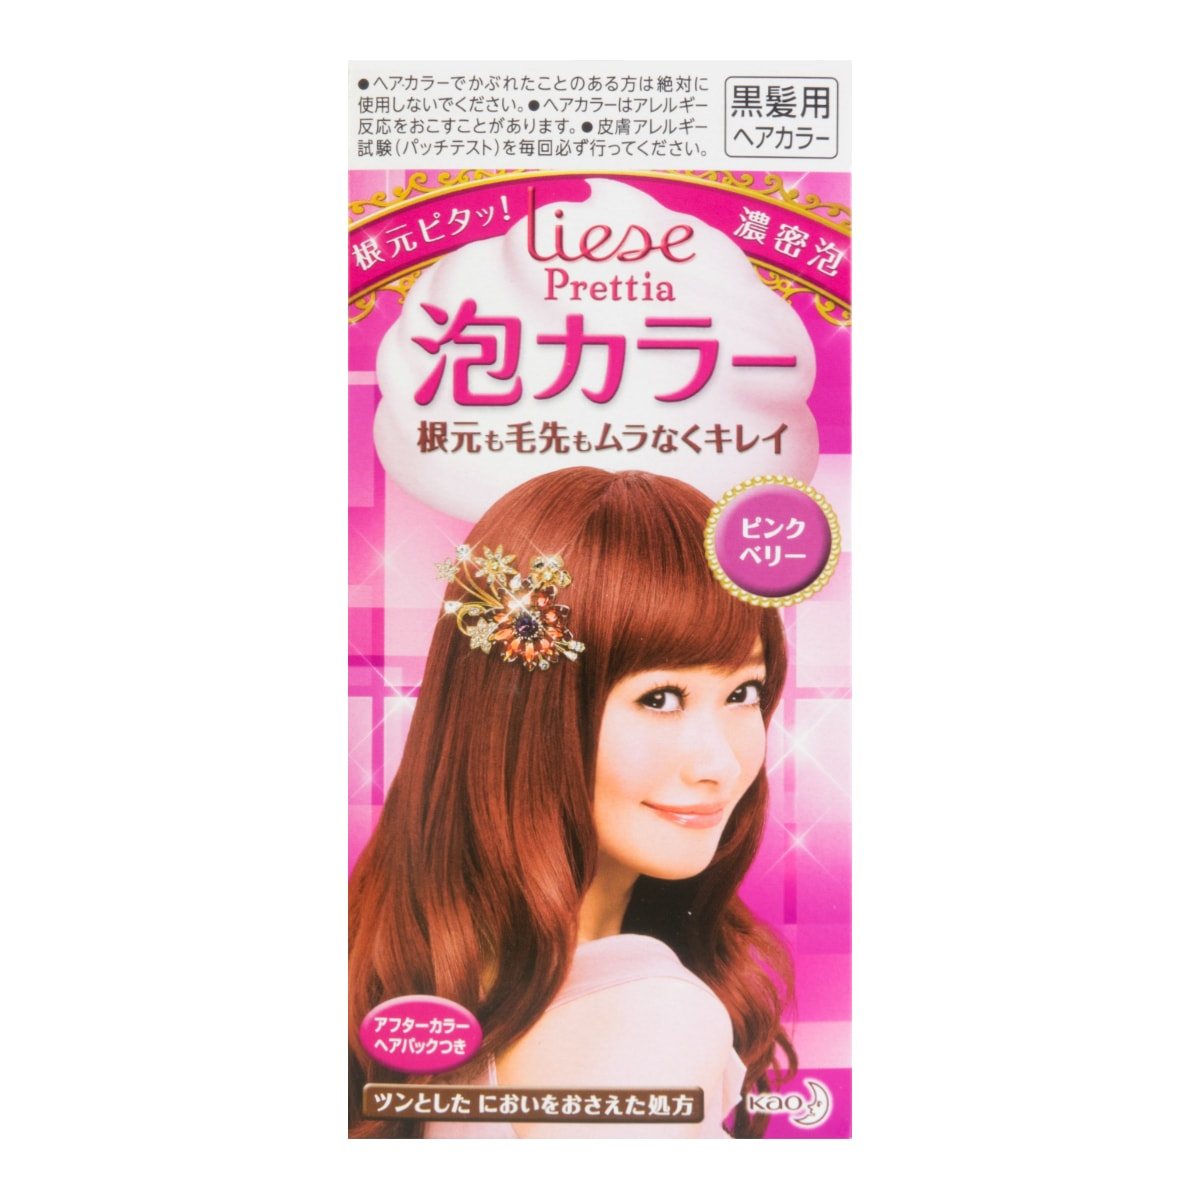 KAO LIESE PRETTIA Bubble Hair Dye Pink Berry 1set